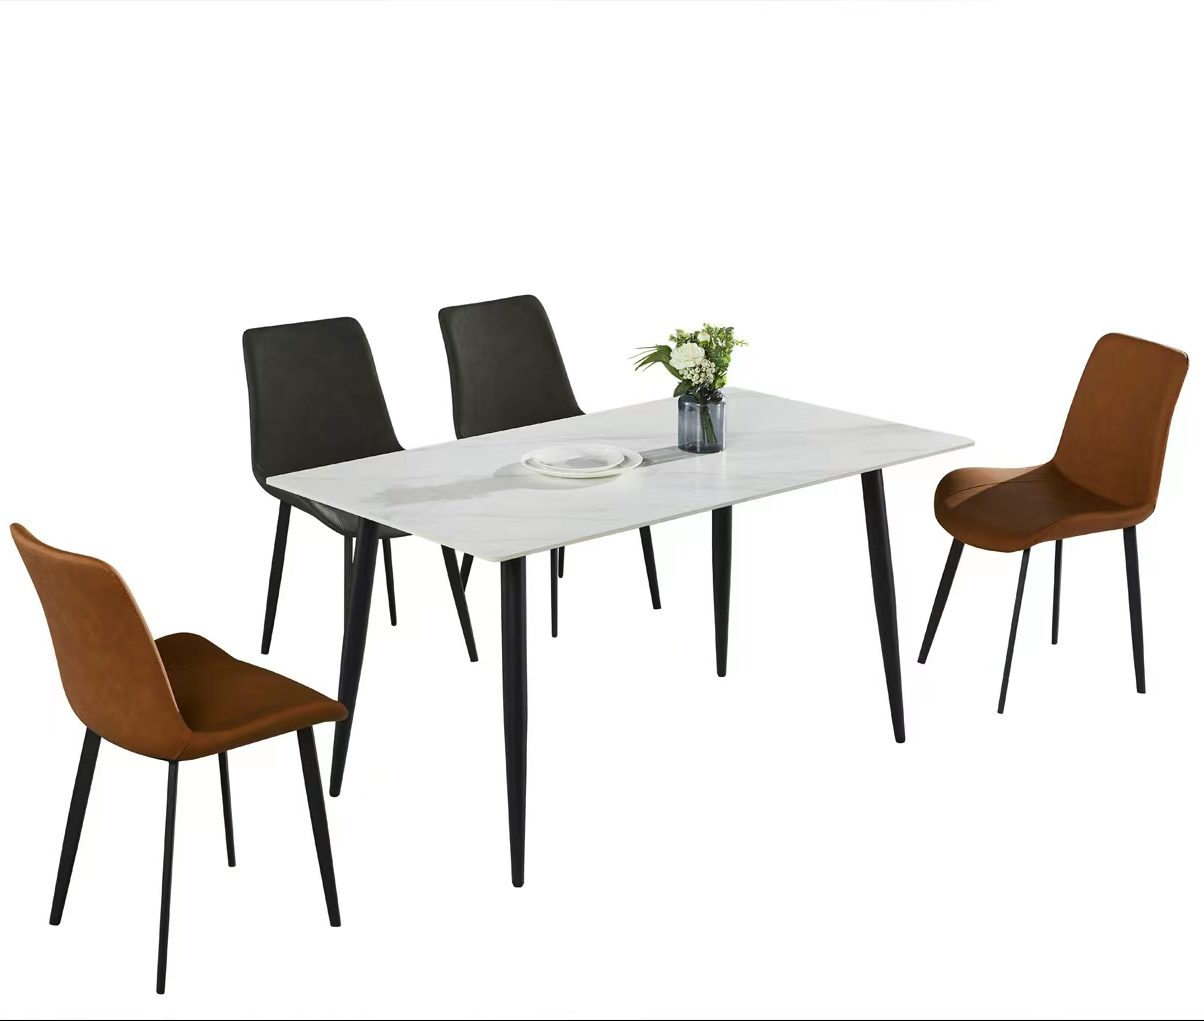 5 Piece Space Saving 4 Seater Dining Room Set White or Black Table Top